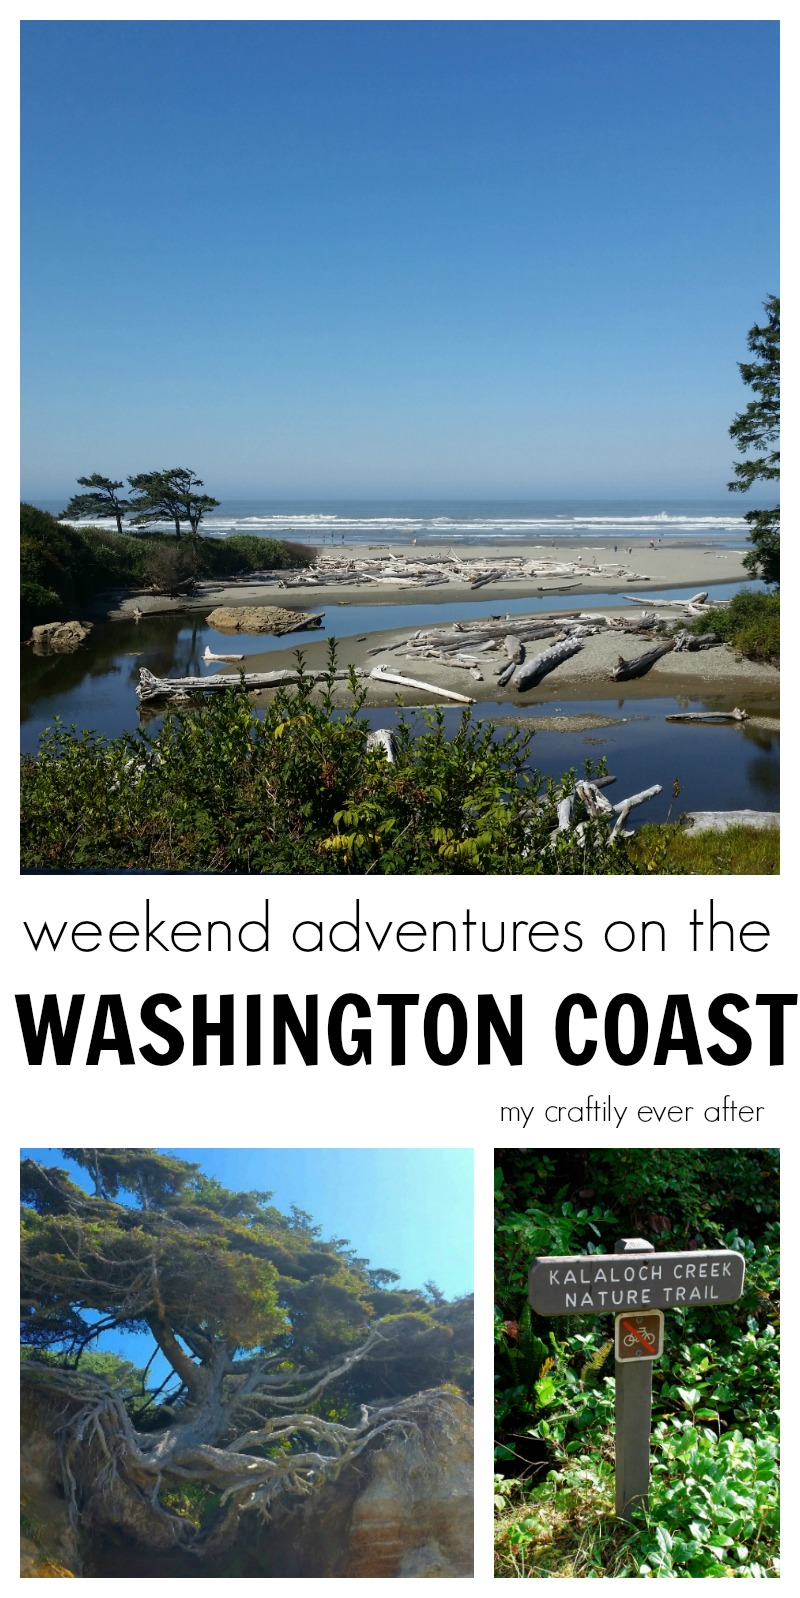 weekend adventures on the washington coast